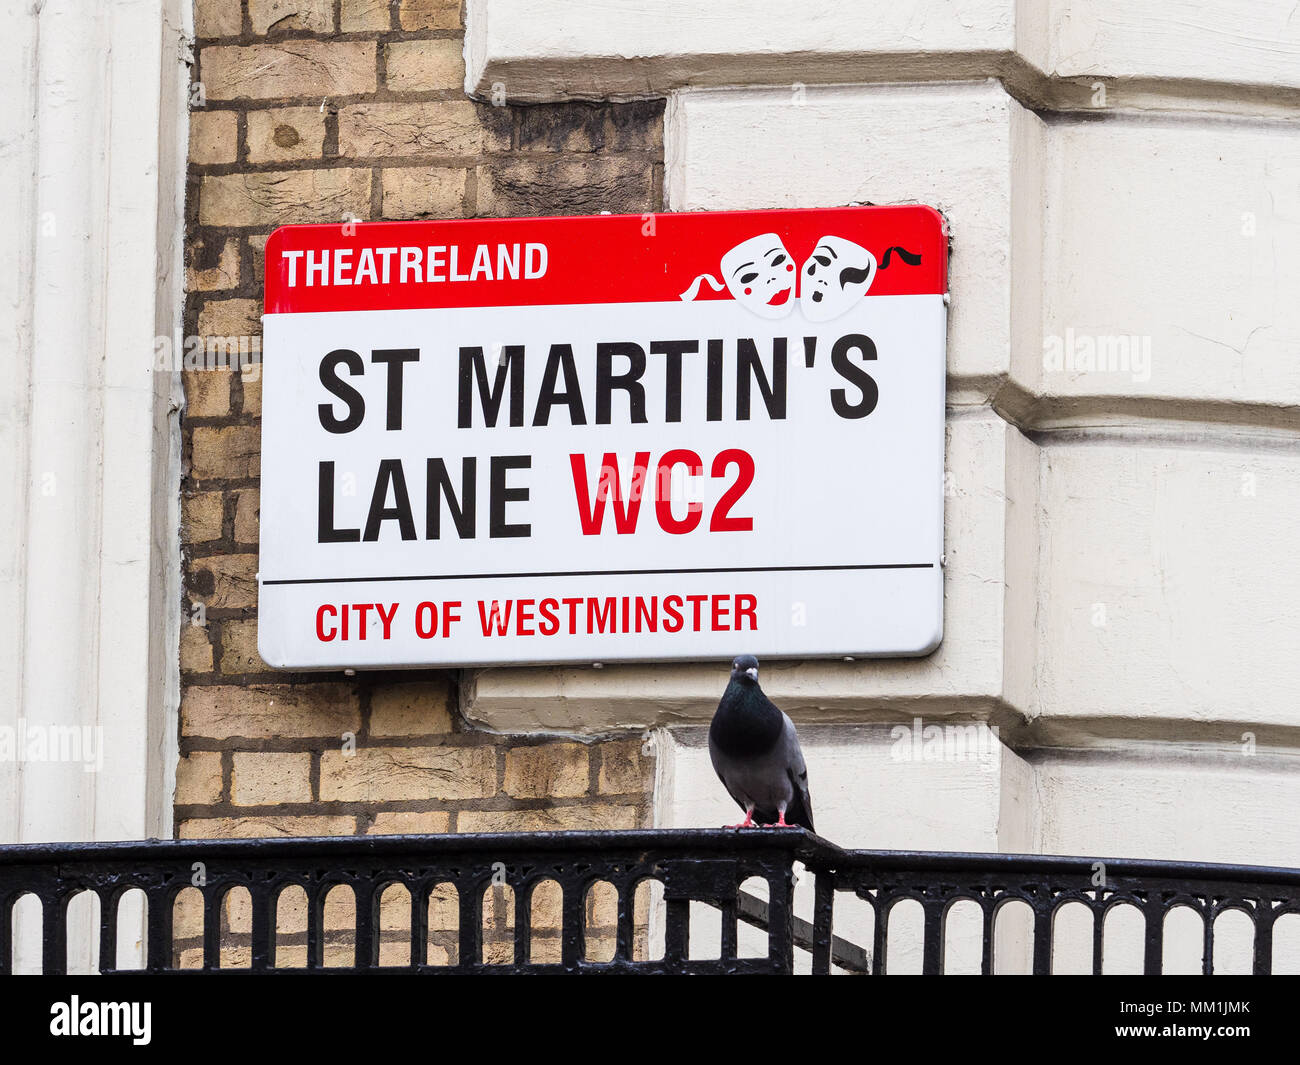 London Street Signs - St Martins Lane in London's Theatreland district - Stock Image